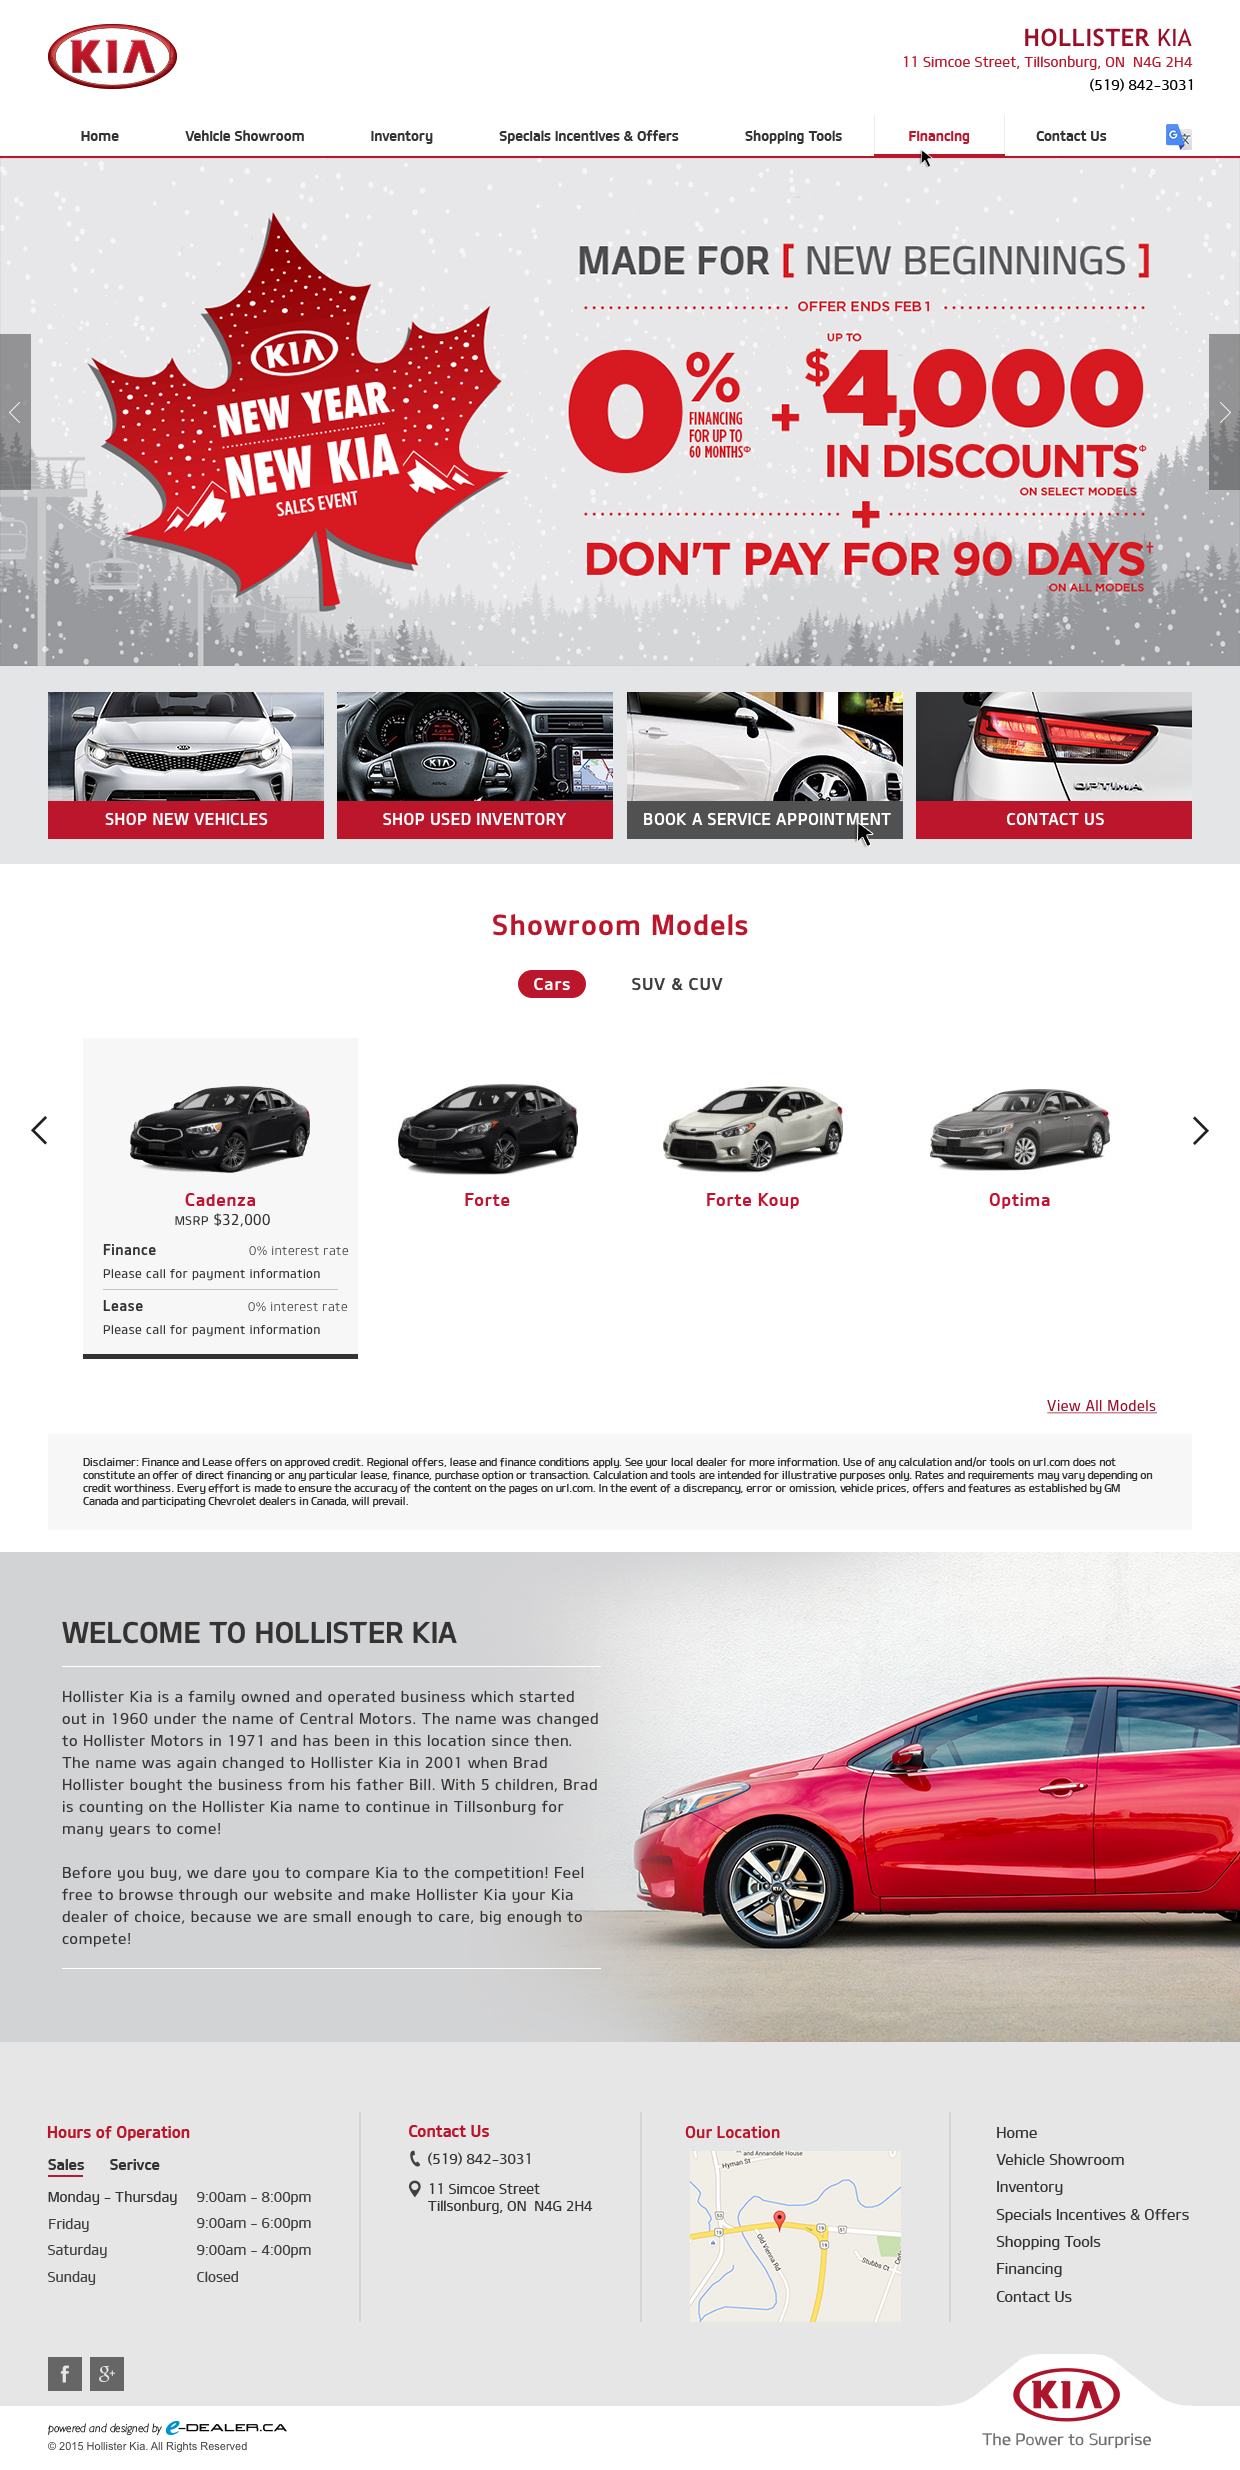 HollisterKia-Design